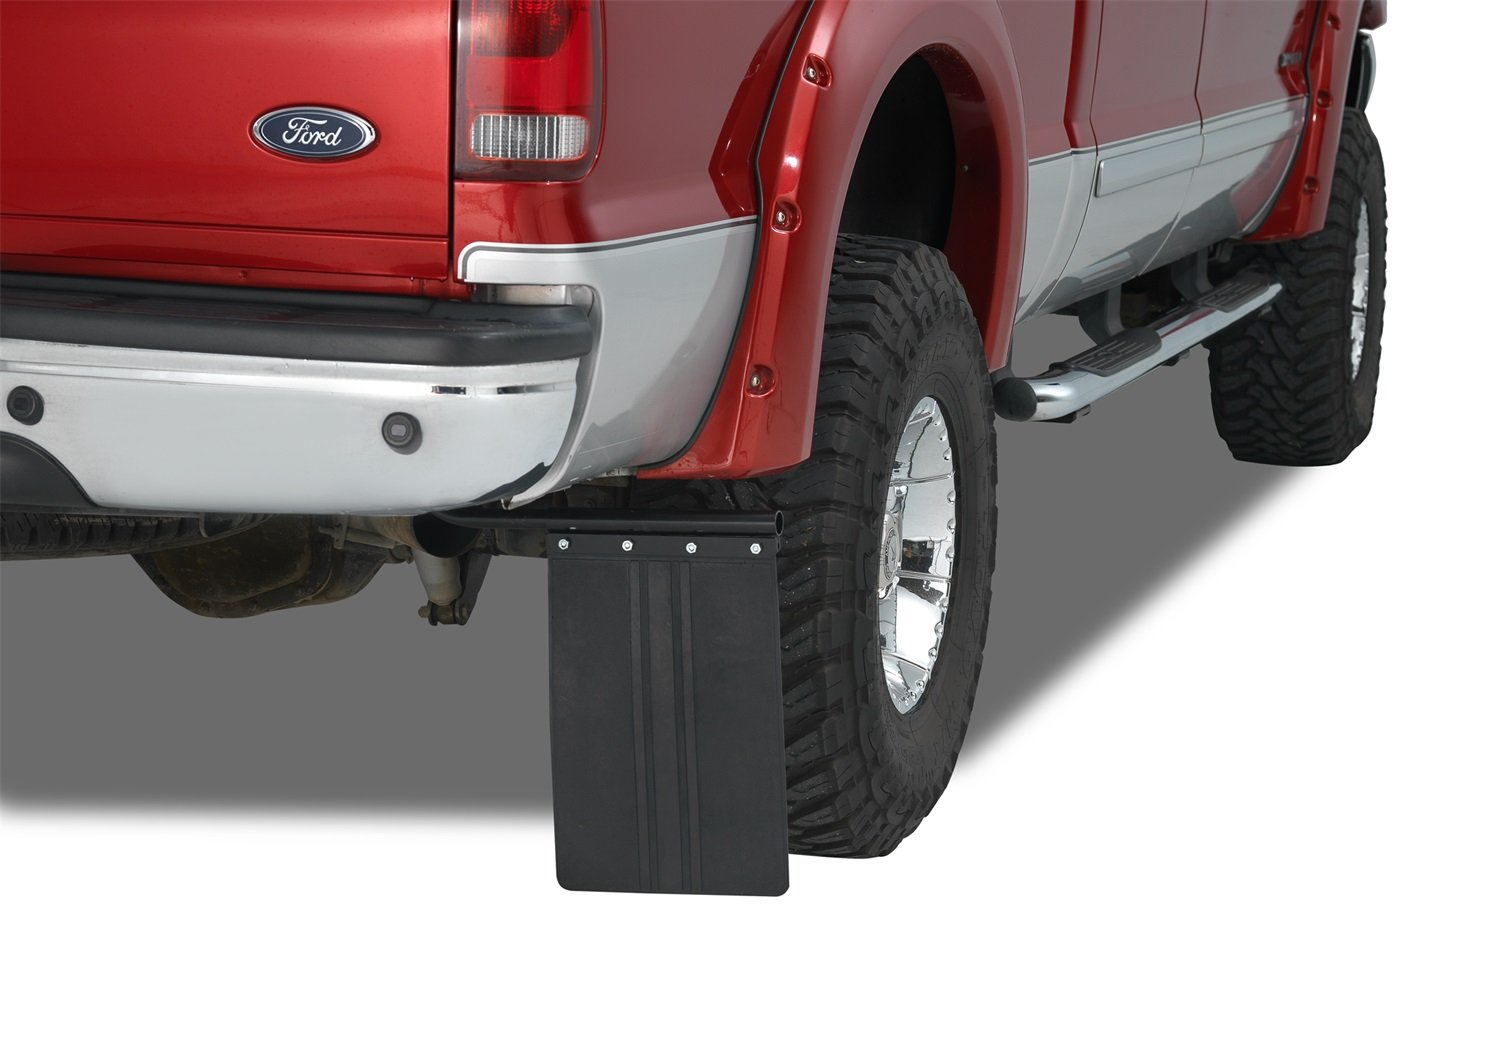 Warrior Products 4000 Universal Mud Flap Bracket Kit with 12 X 18 Mud Flap WRR:4000